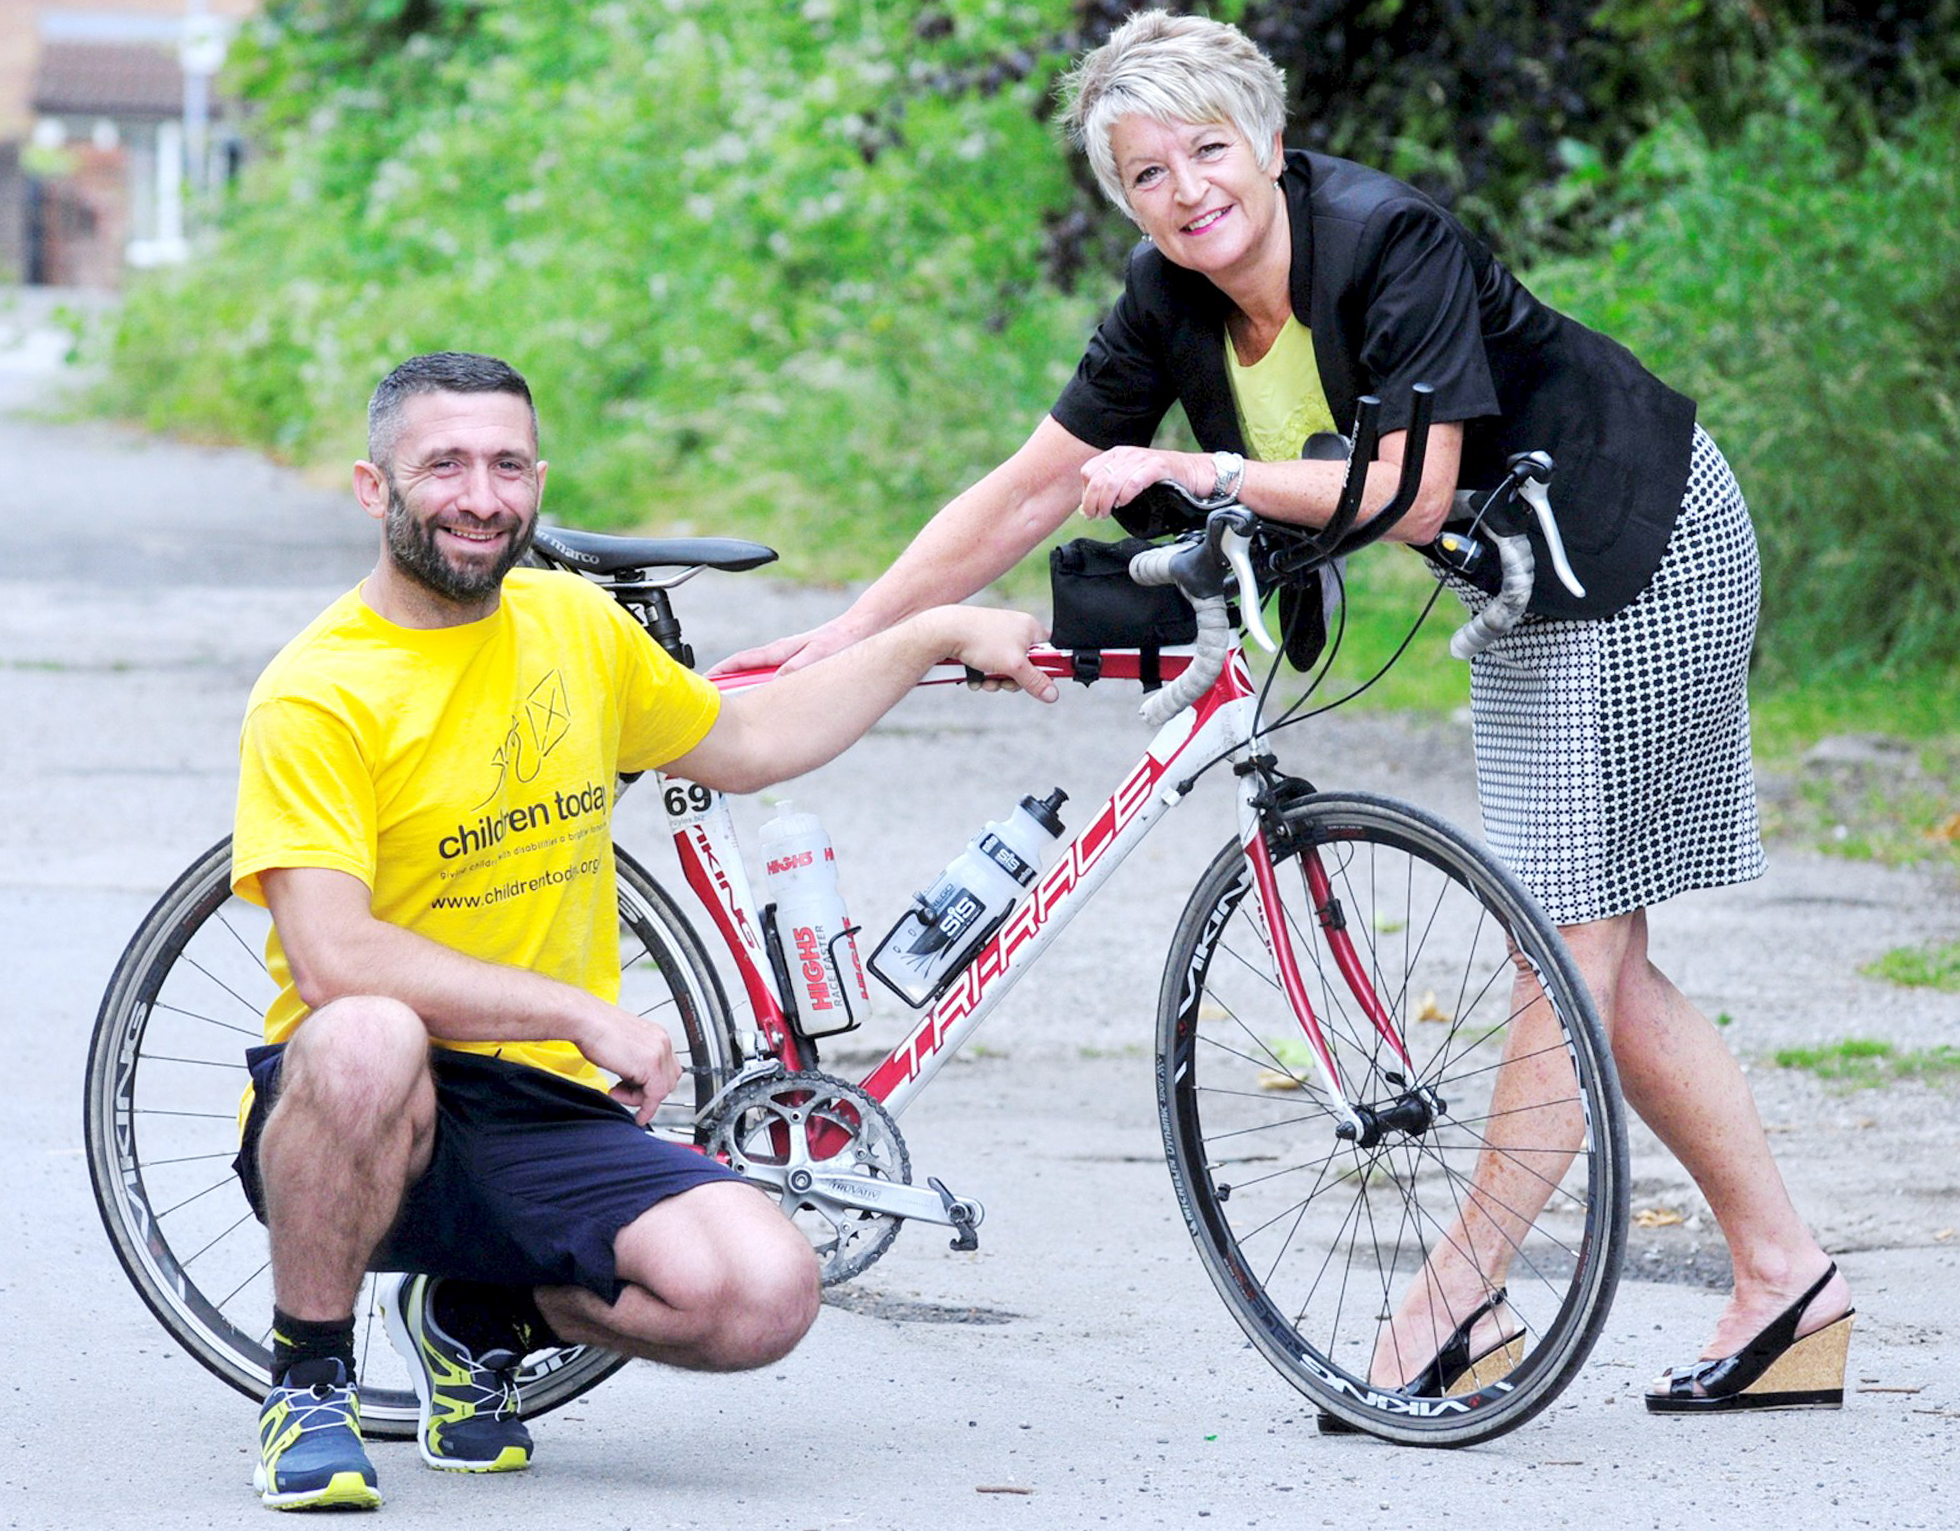 Traveller gears up for Ironman triathlon